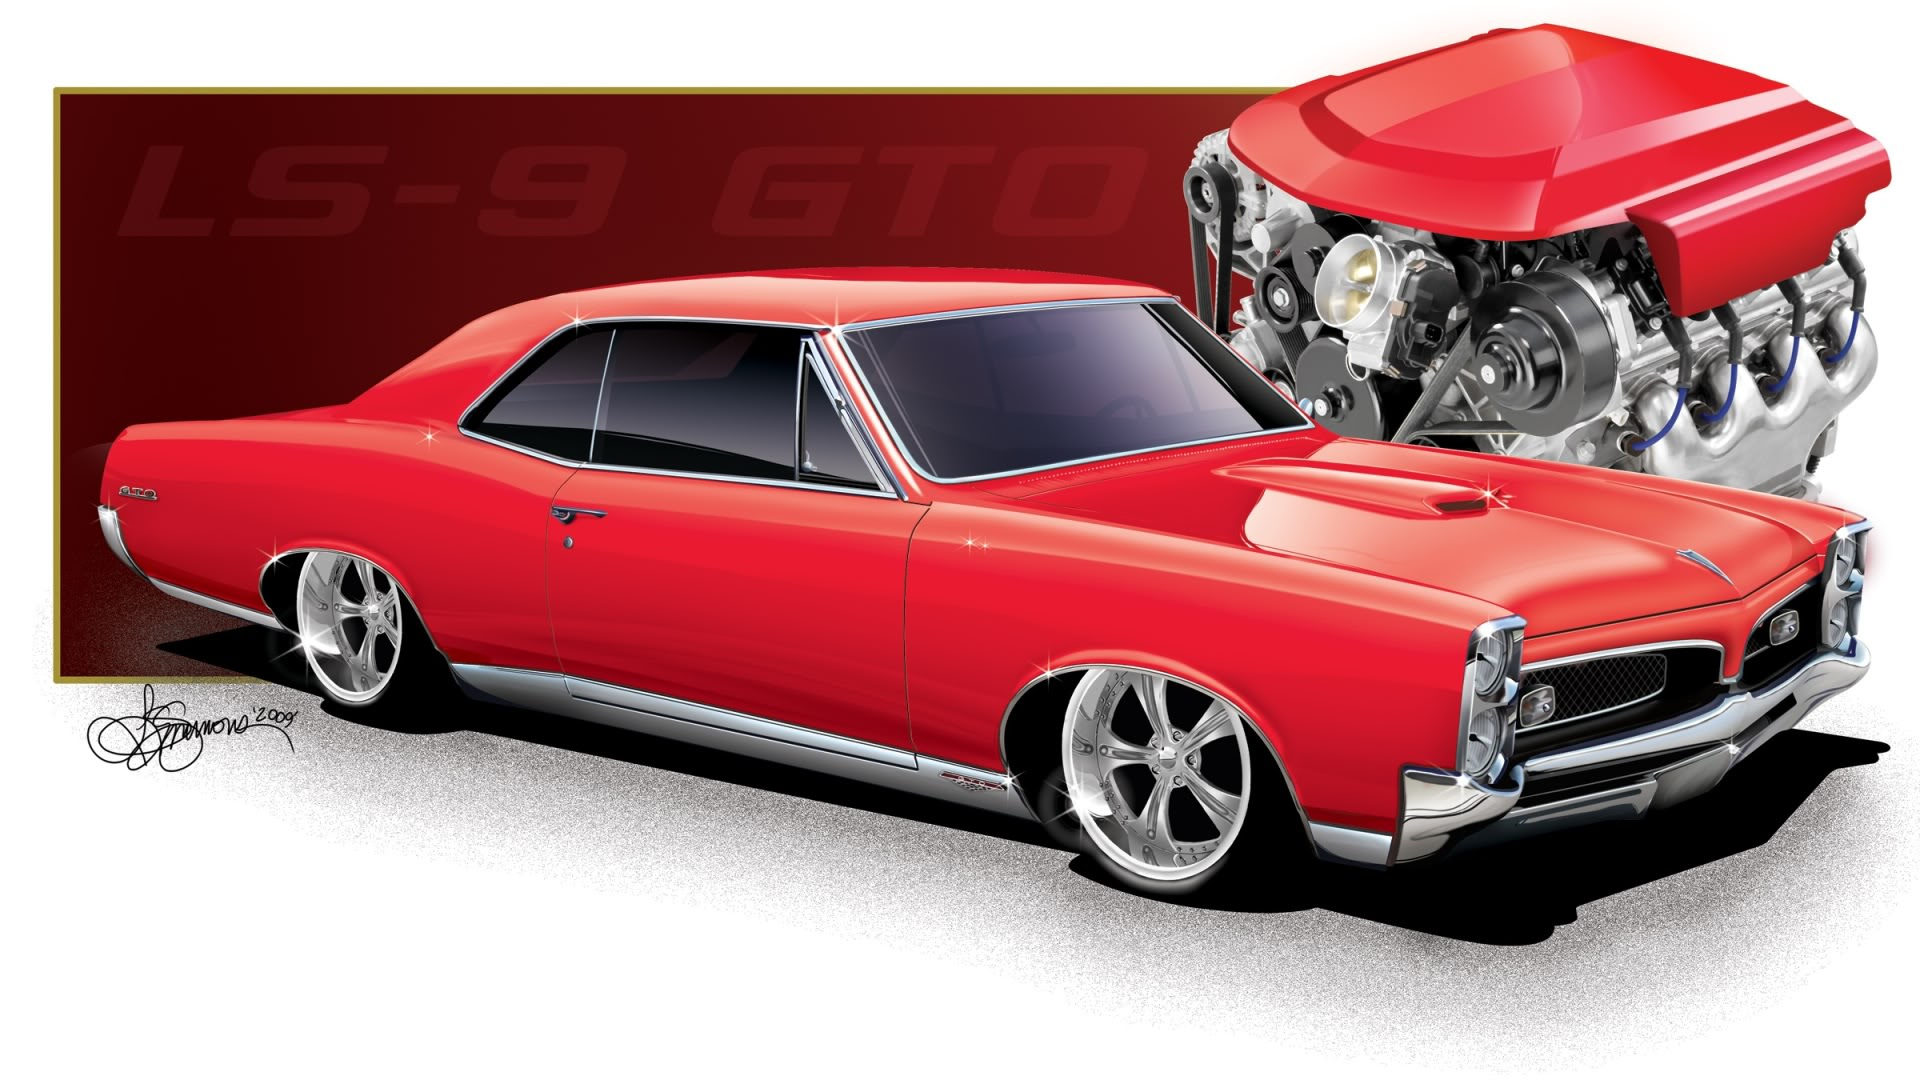 1967 Red LS9 Pontiac GTO wallpaper 1920x1080 36938 WallpaperUP 1920x1080